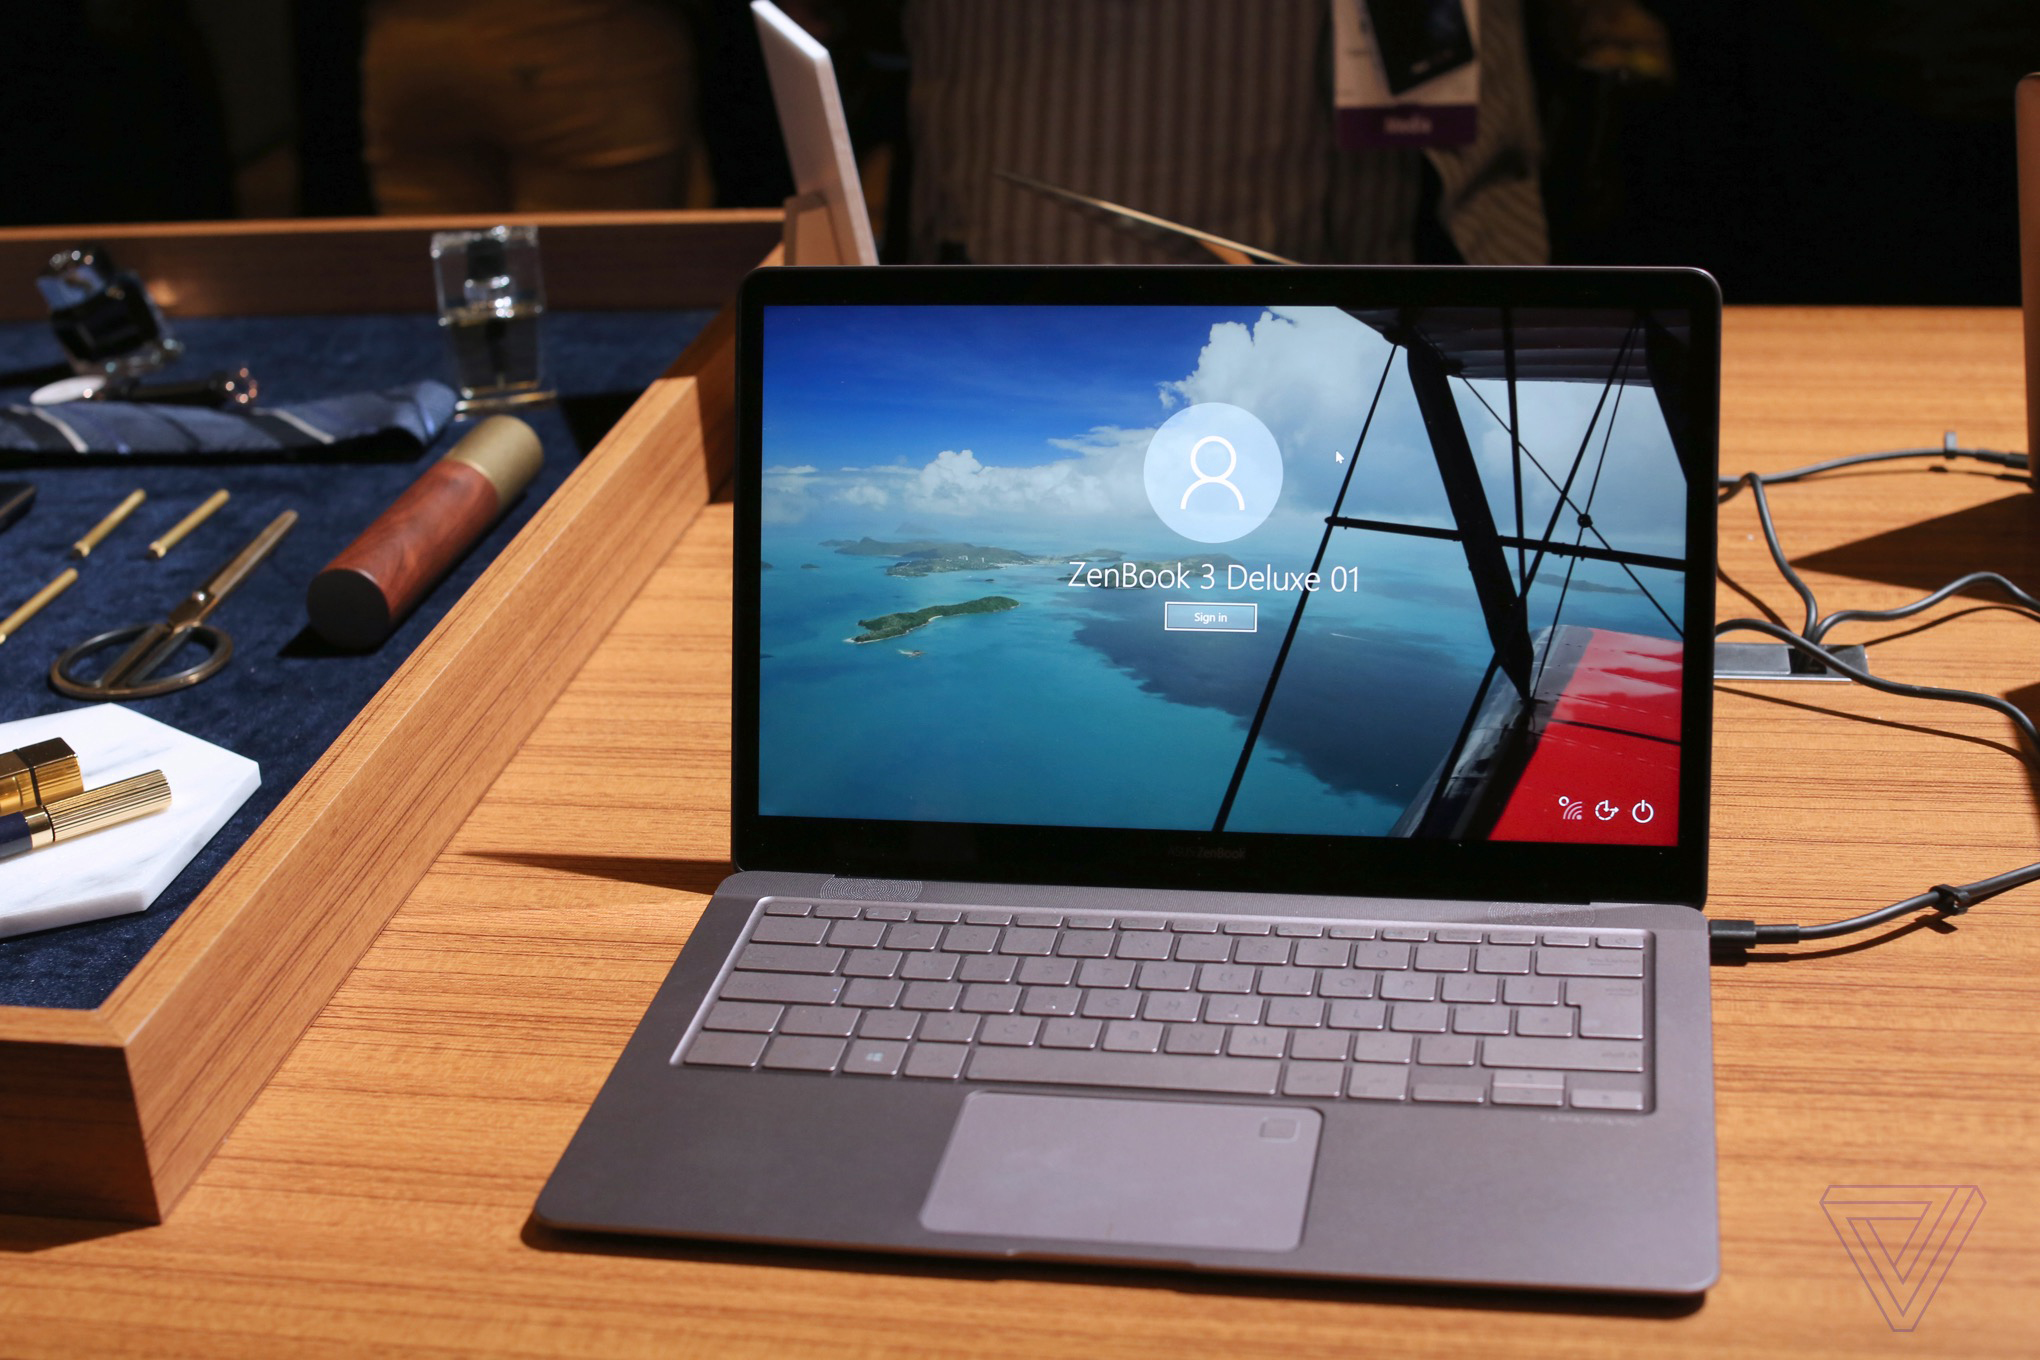 Asus Zenbook 3 Deluxe Takes On The Macbook Pro With A